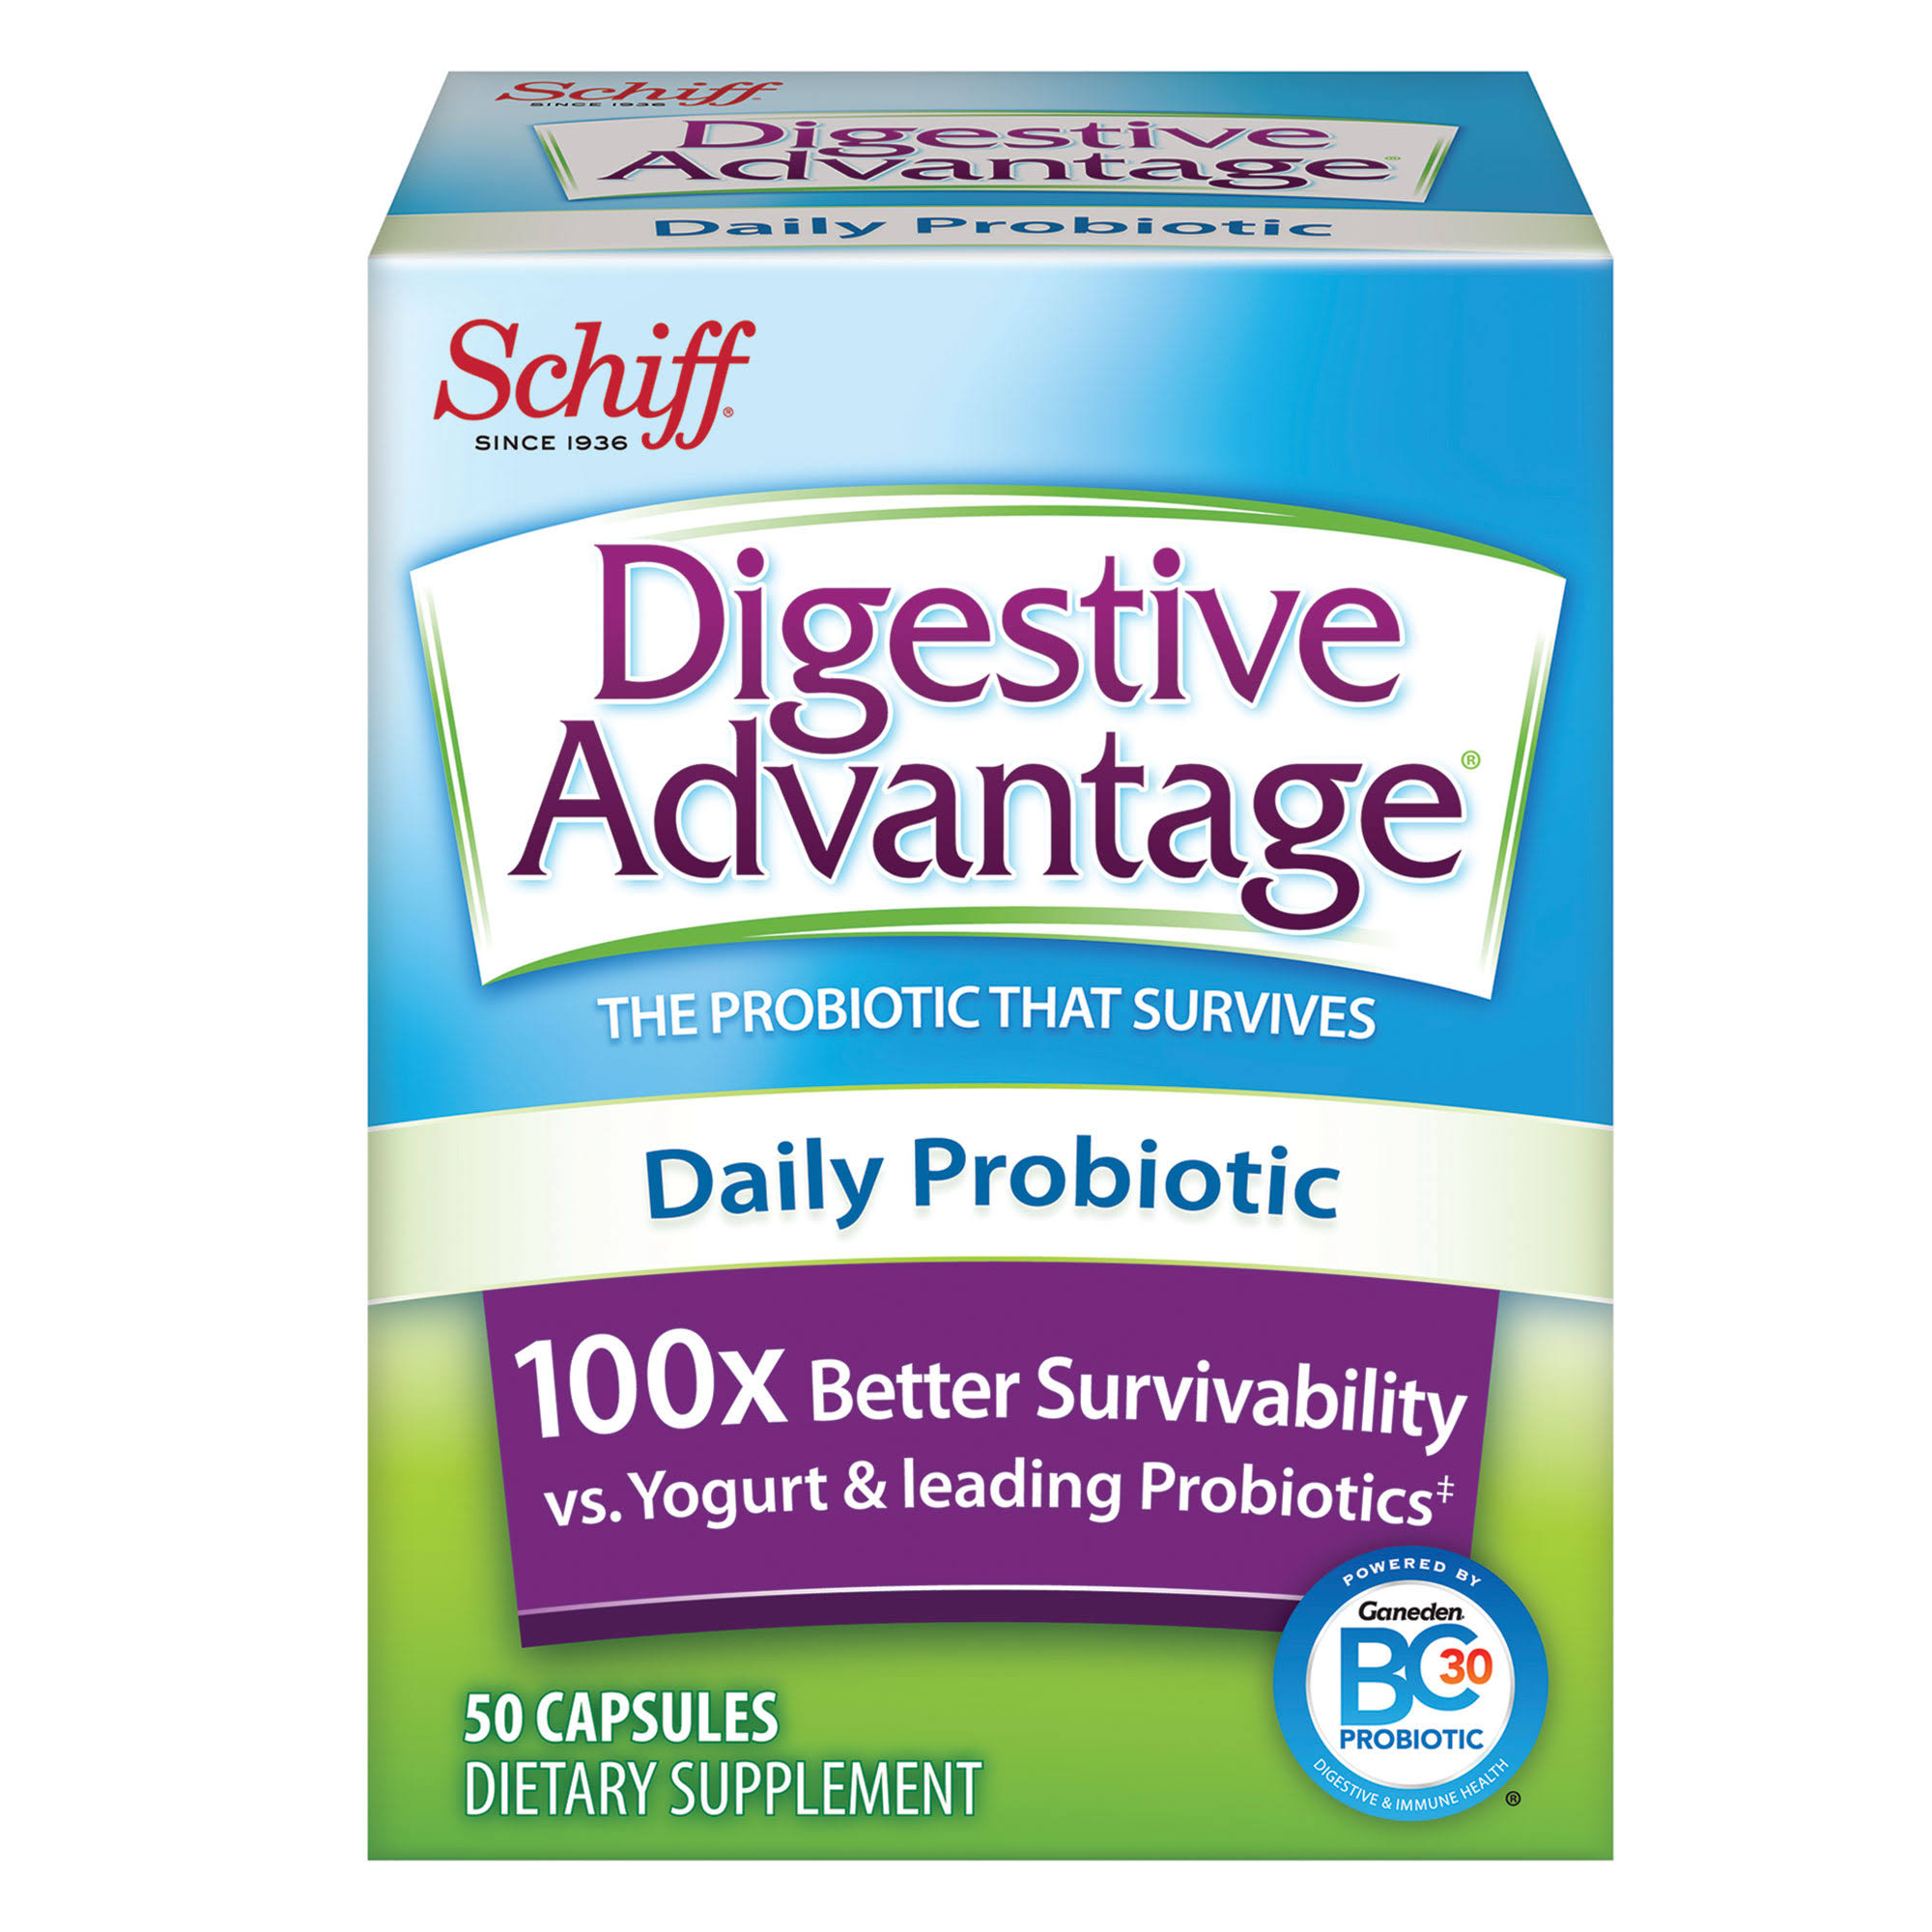 Schiff Digestive Advantage Daily Probiotic Supplement - 50ct